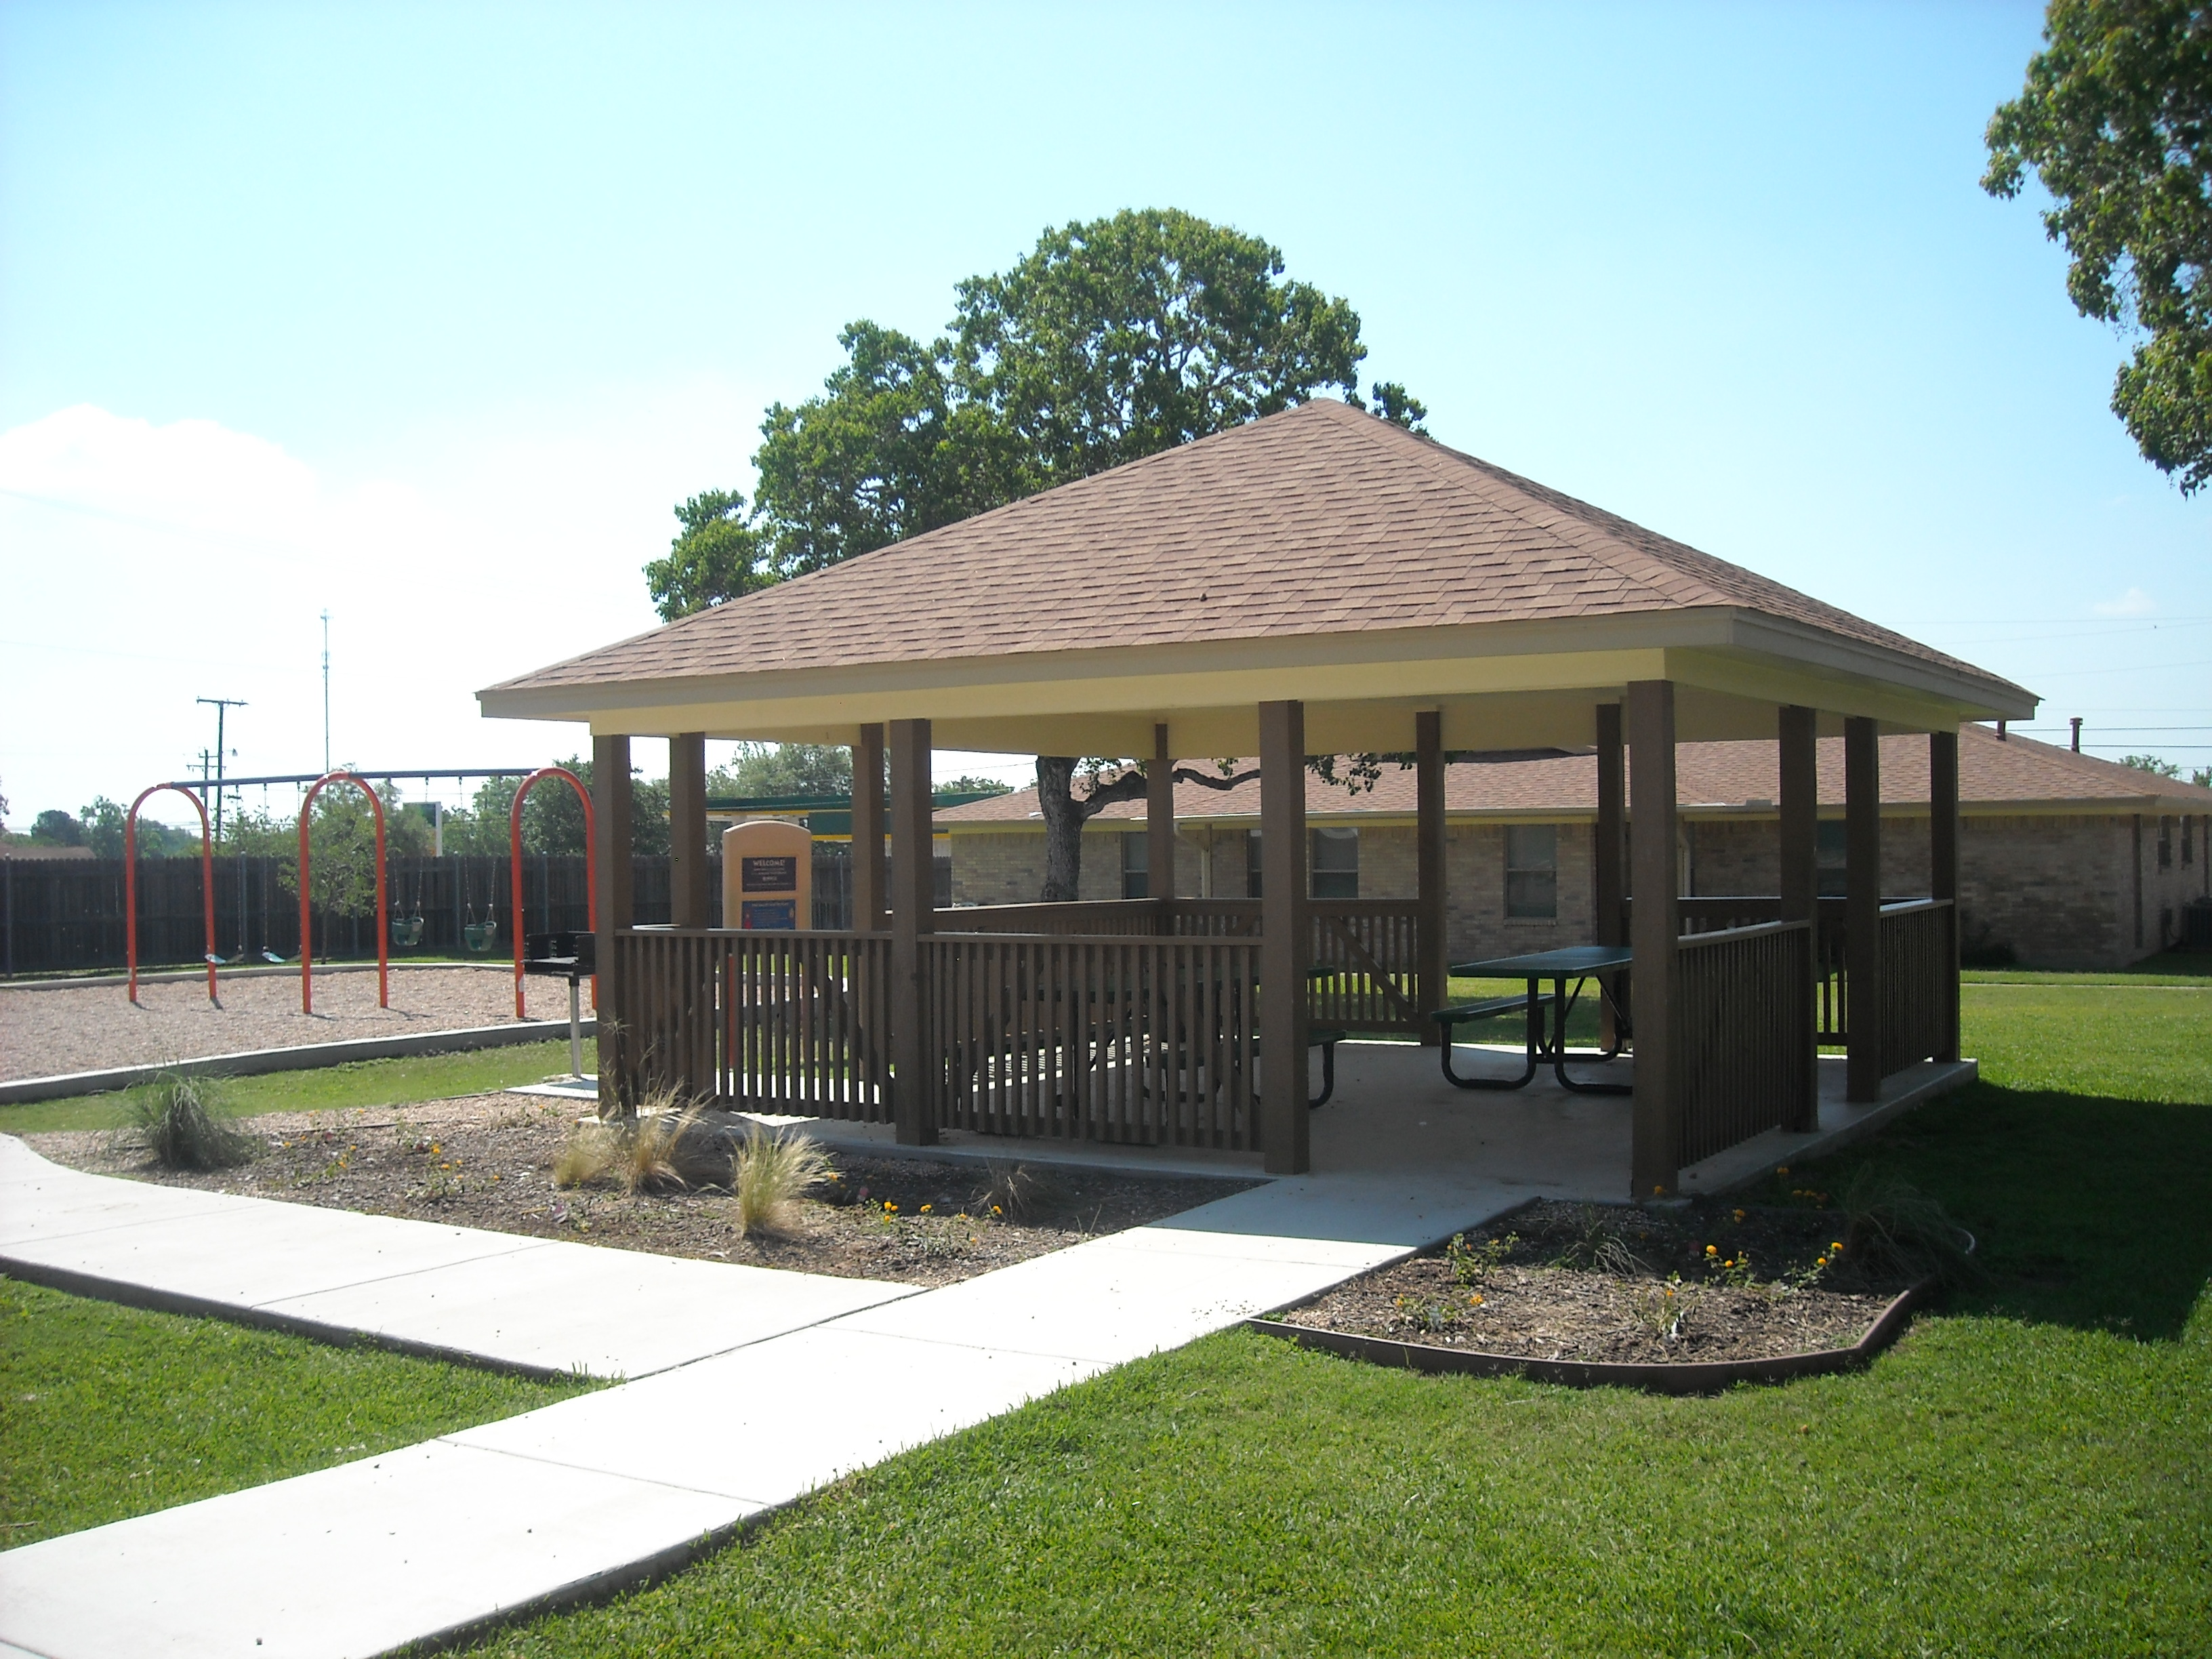 Hyatt Manor Apartments Gazebo